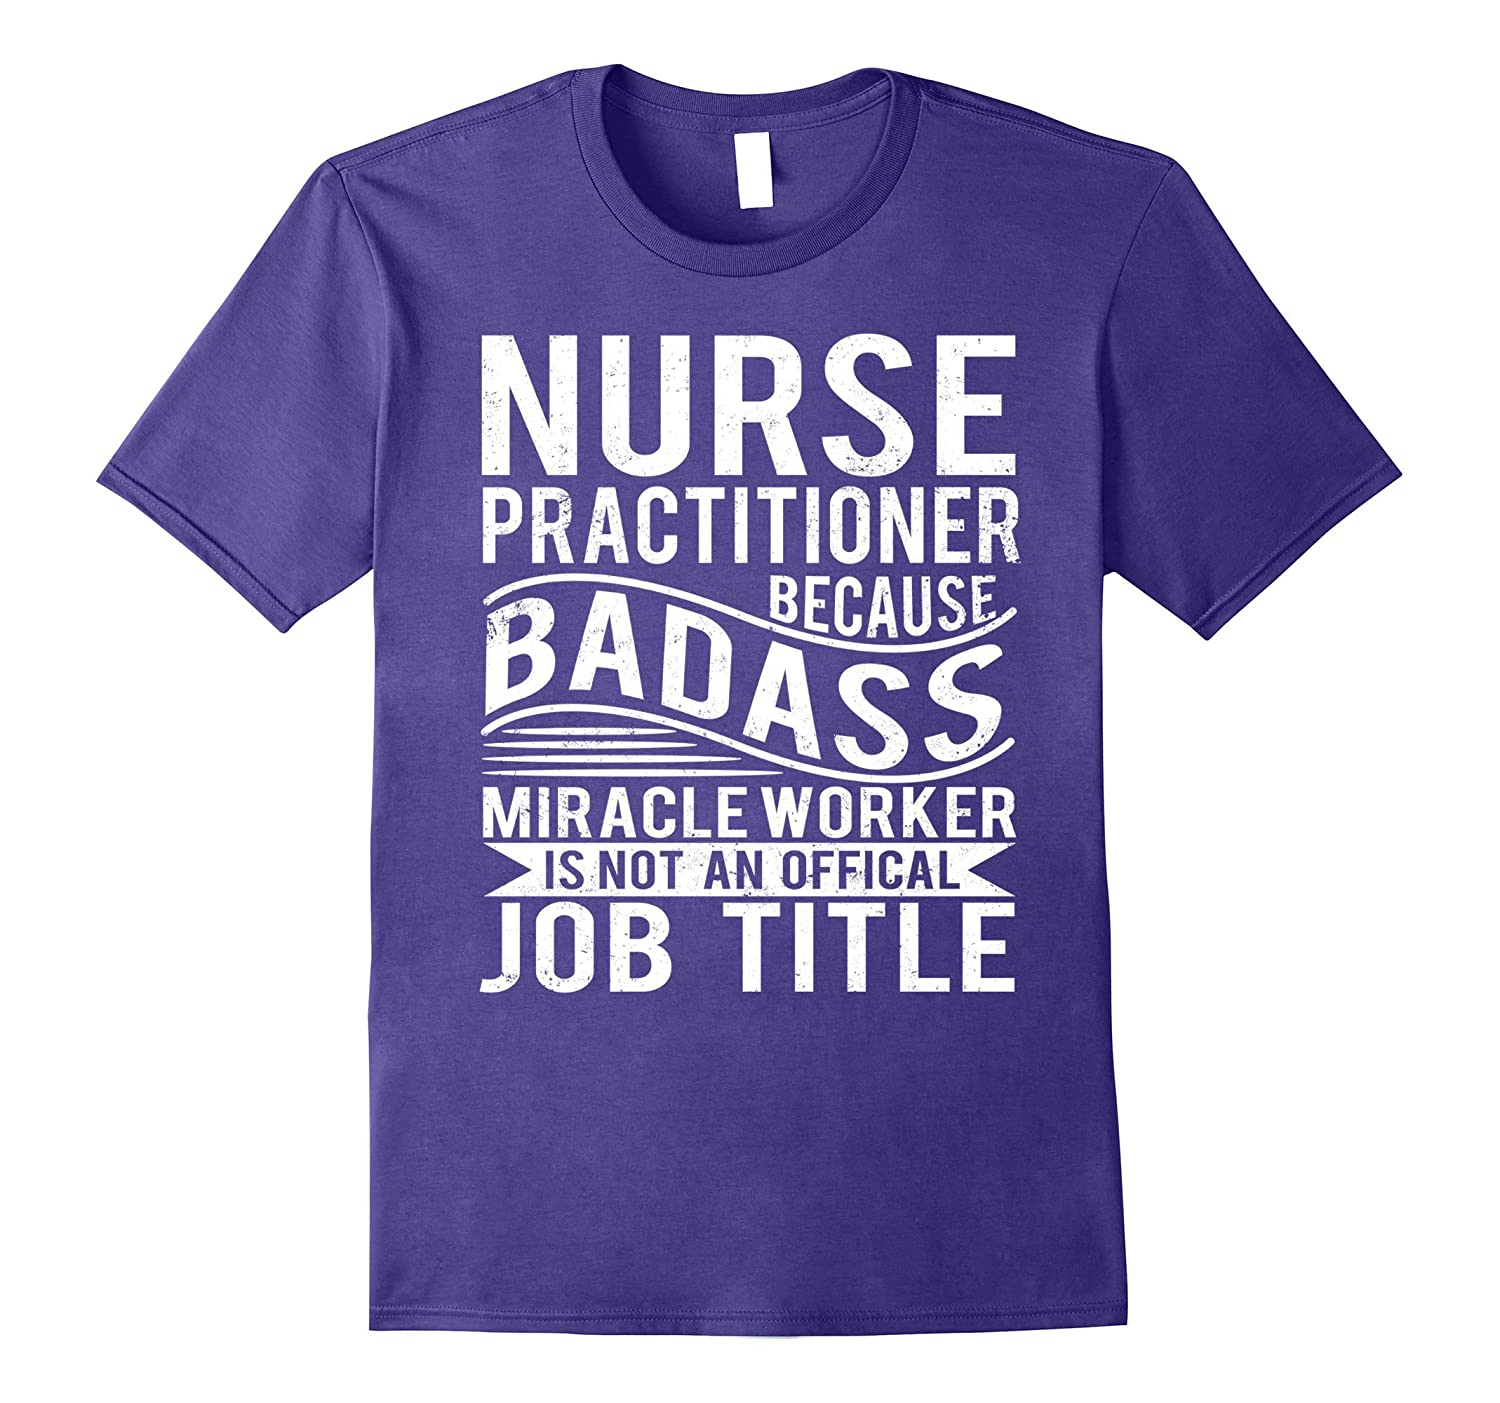 Nurse Practitioner Because Badass Miracle Worker T-shirt-TH